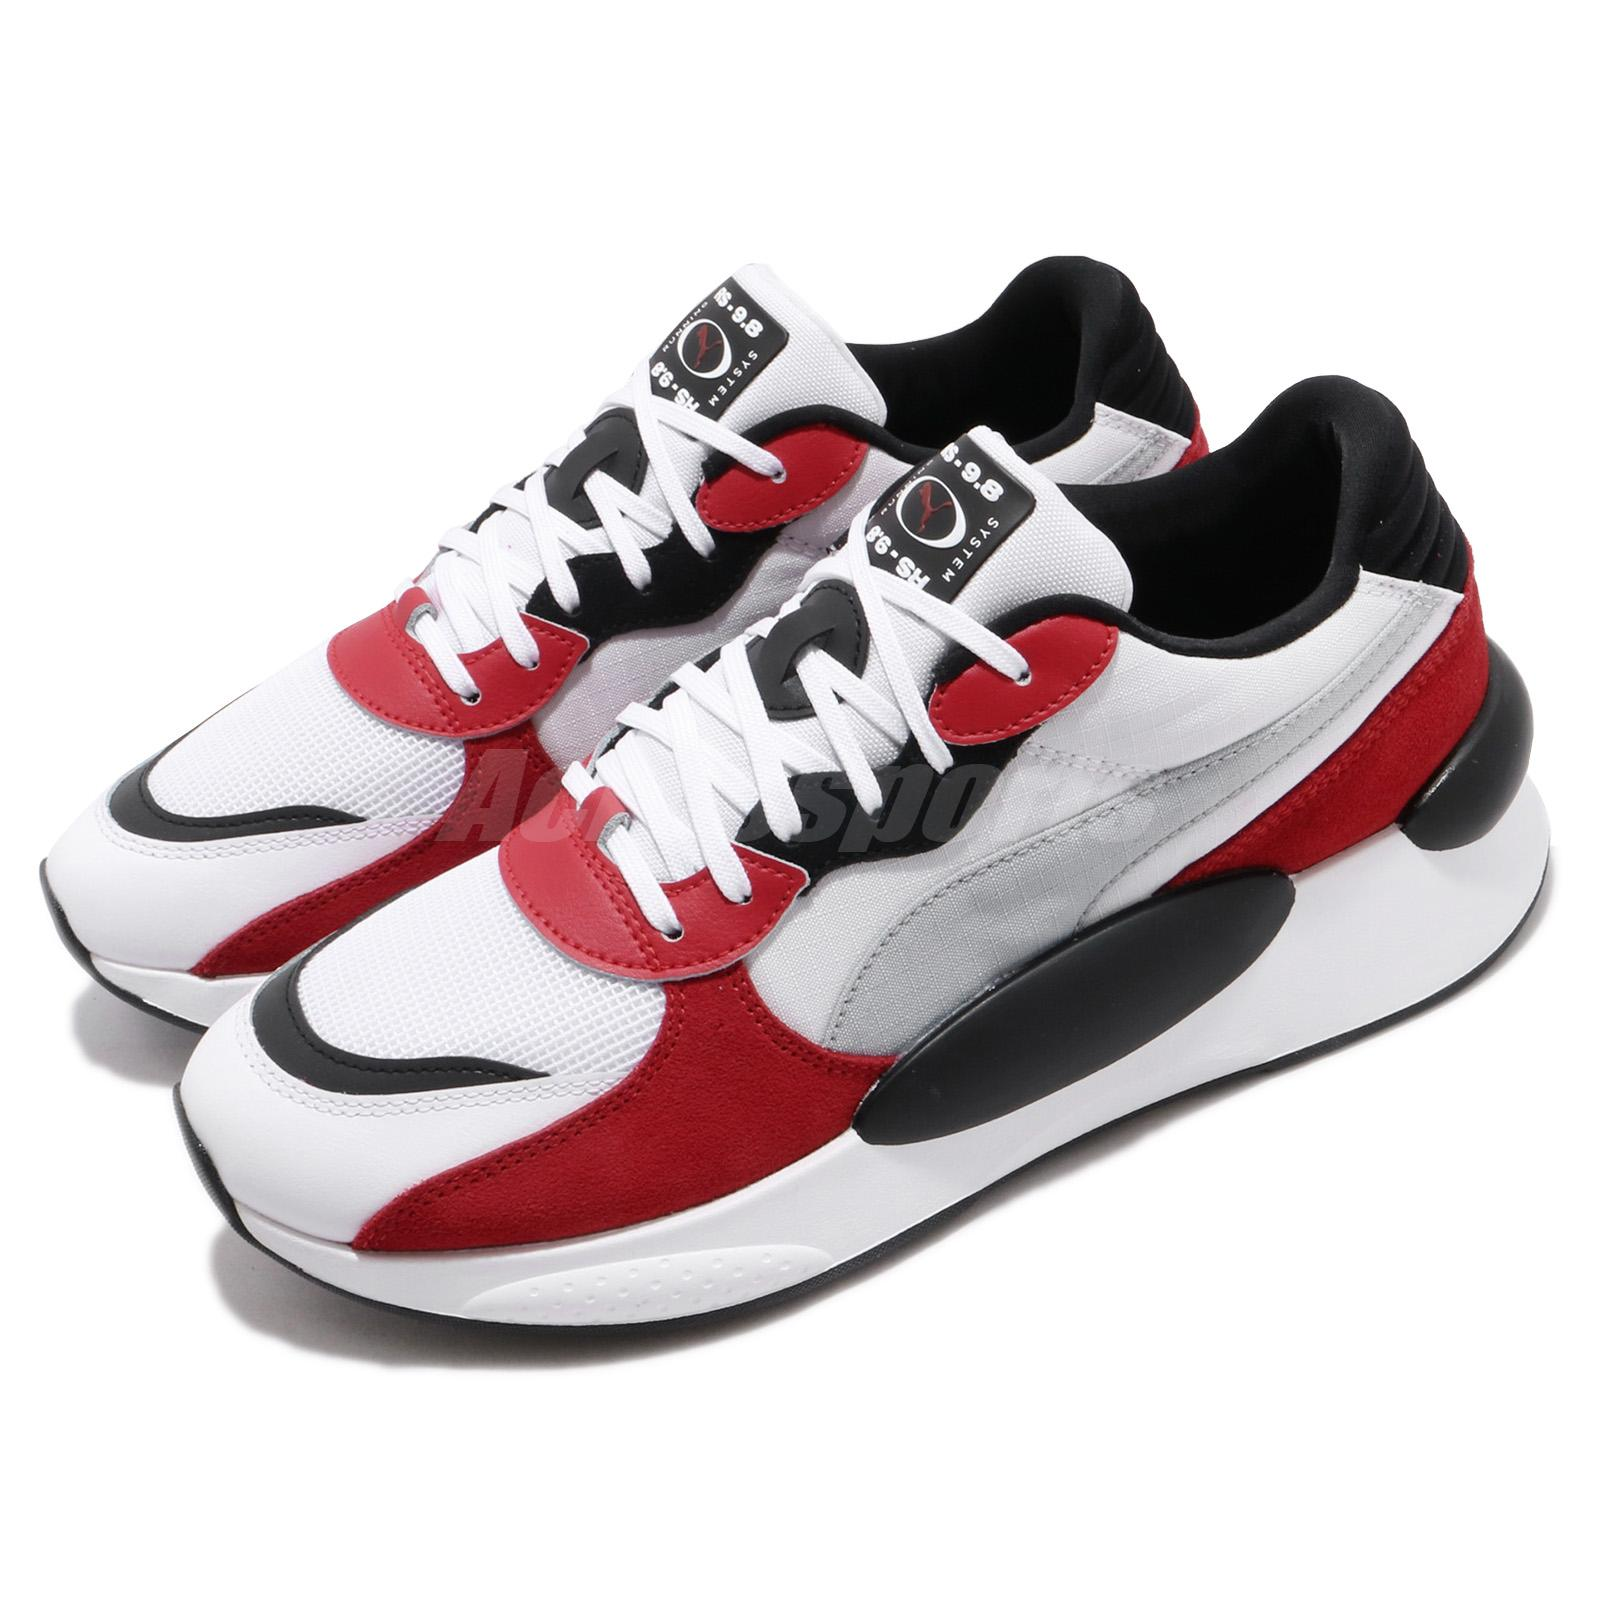 a830f5a7666 Details about Puma RS 9.8 Space White Red Black Mens Womens Daddy Shoes  Lifestyle 370230-01